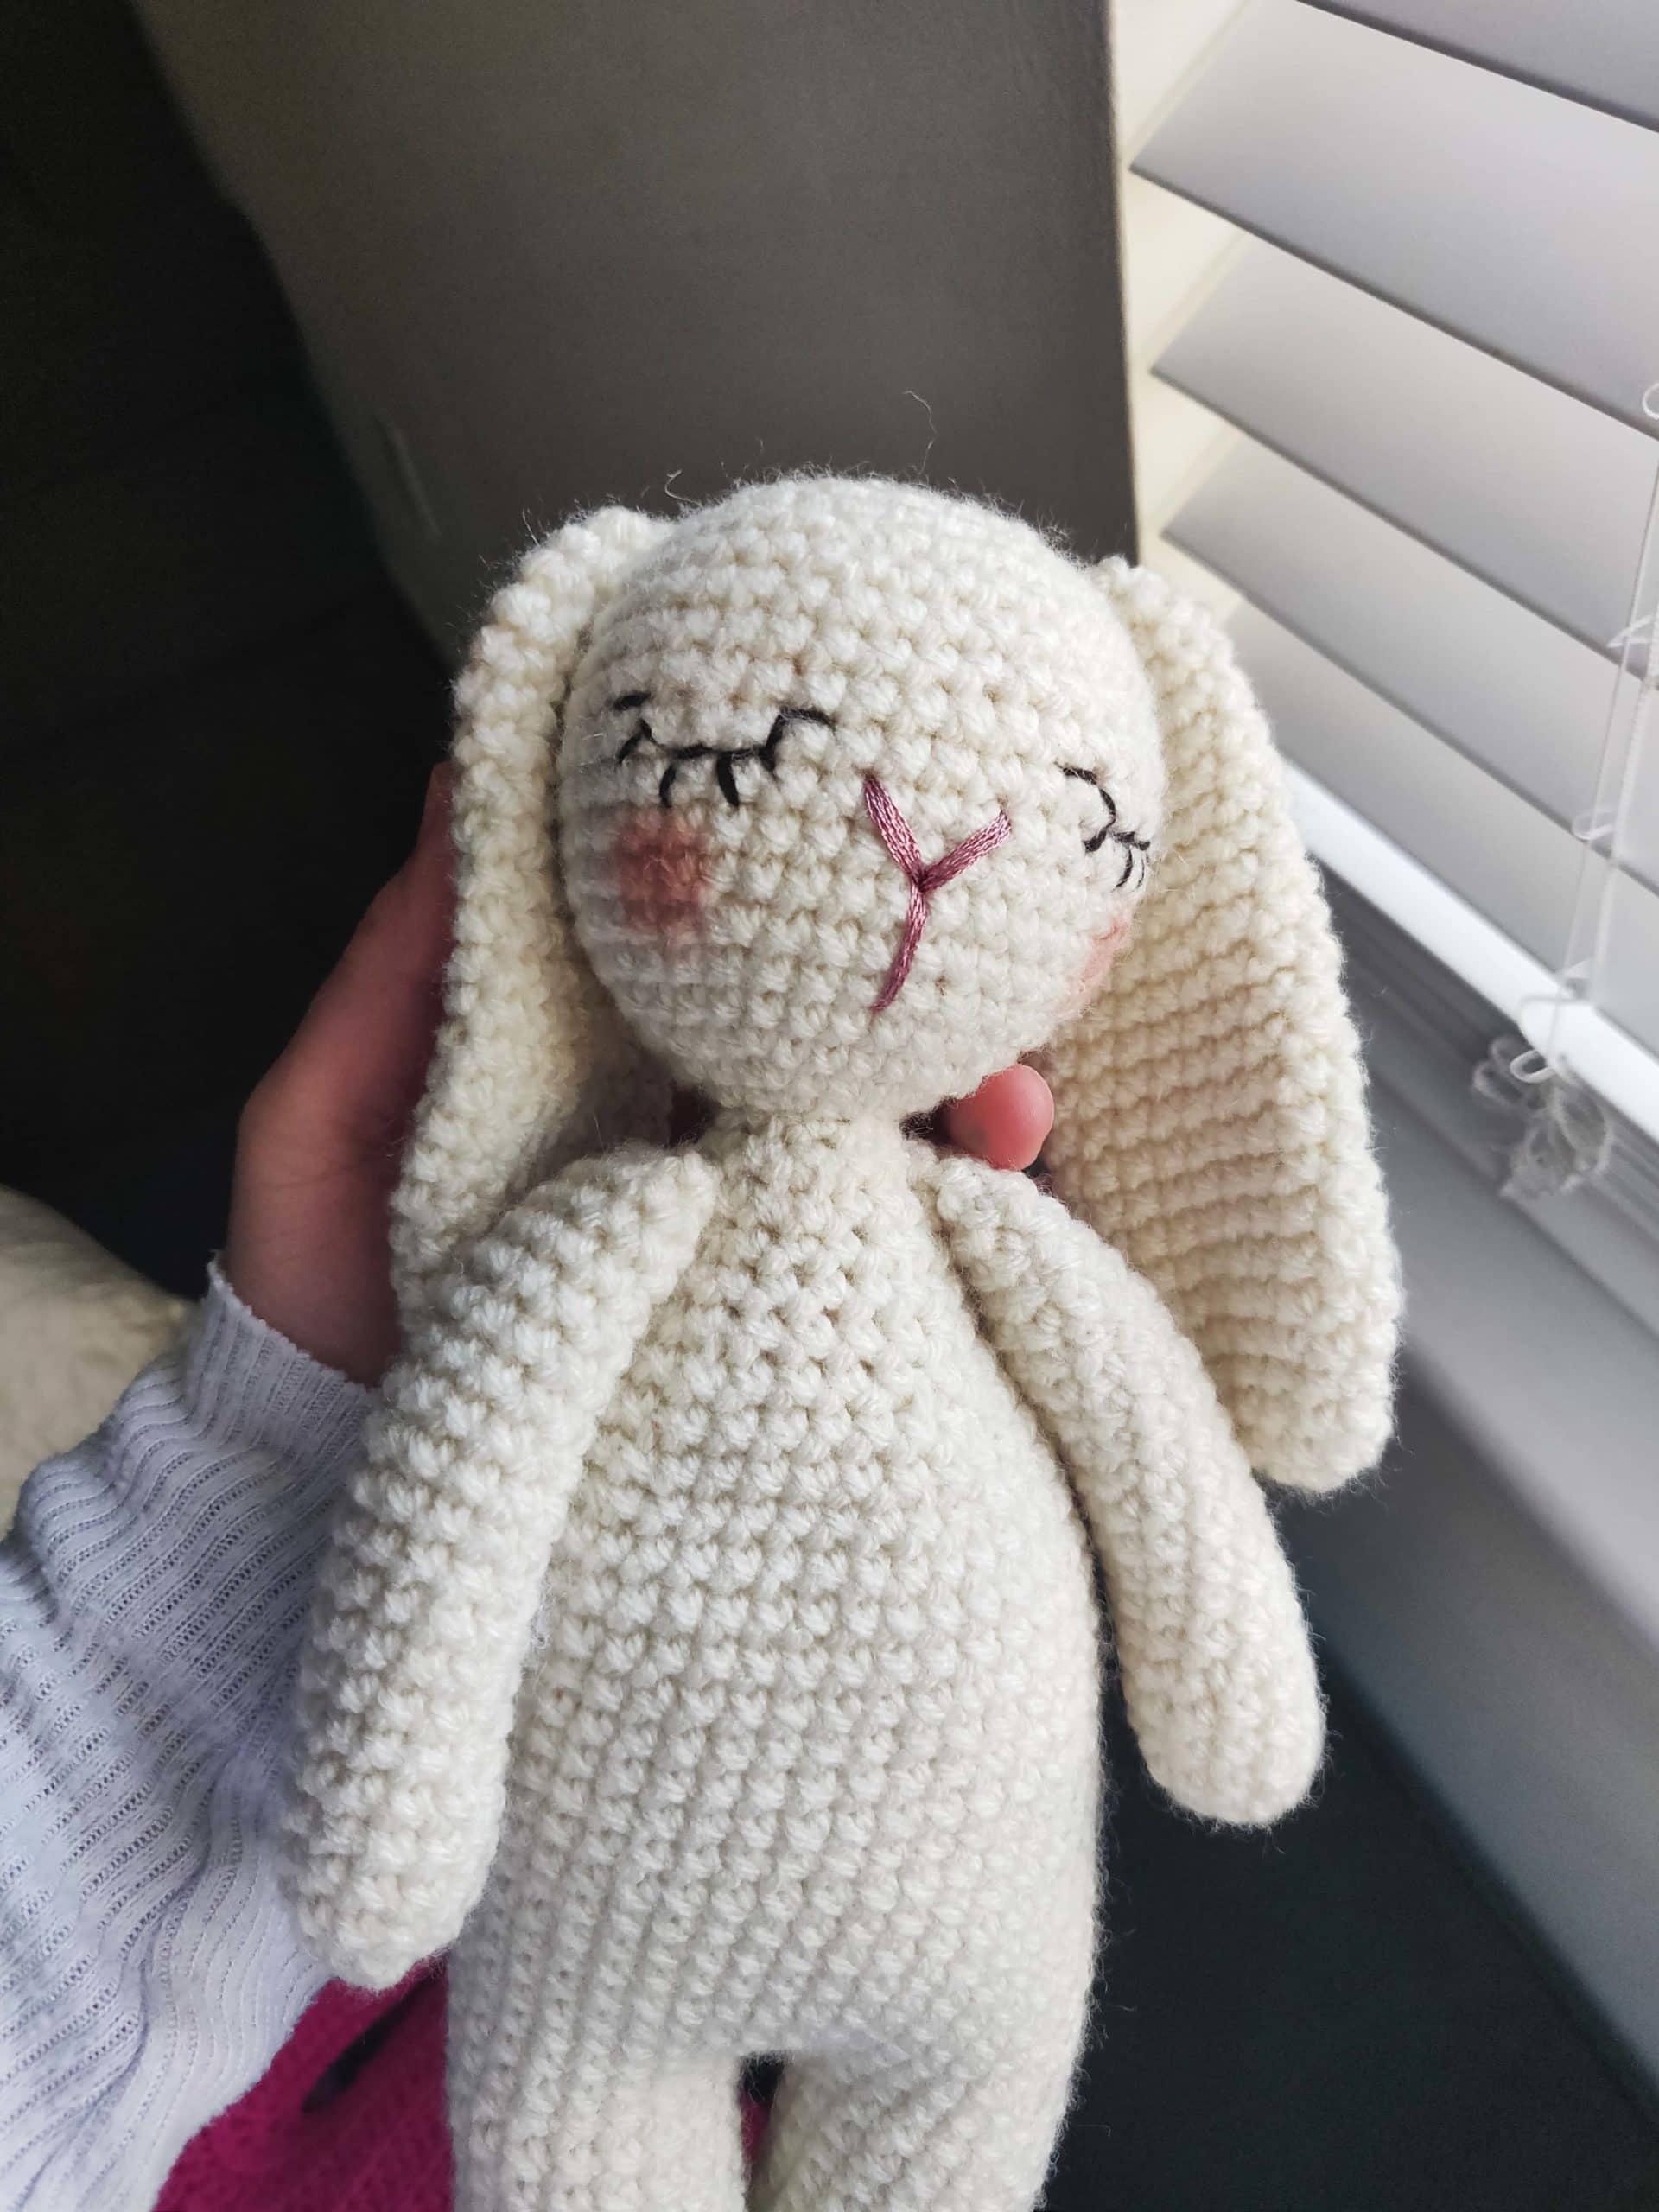 White crochet bunny with pink blush.